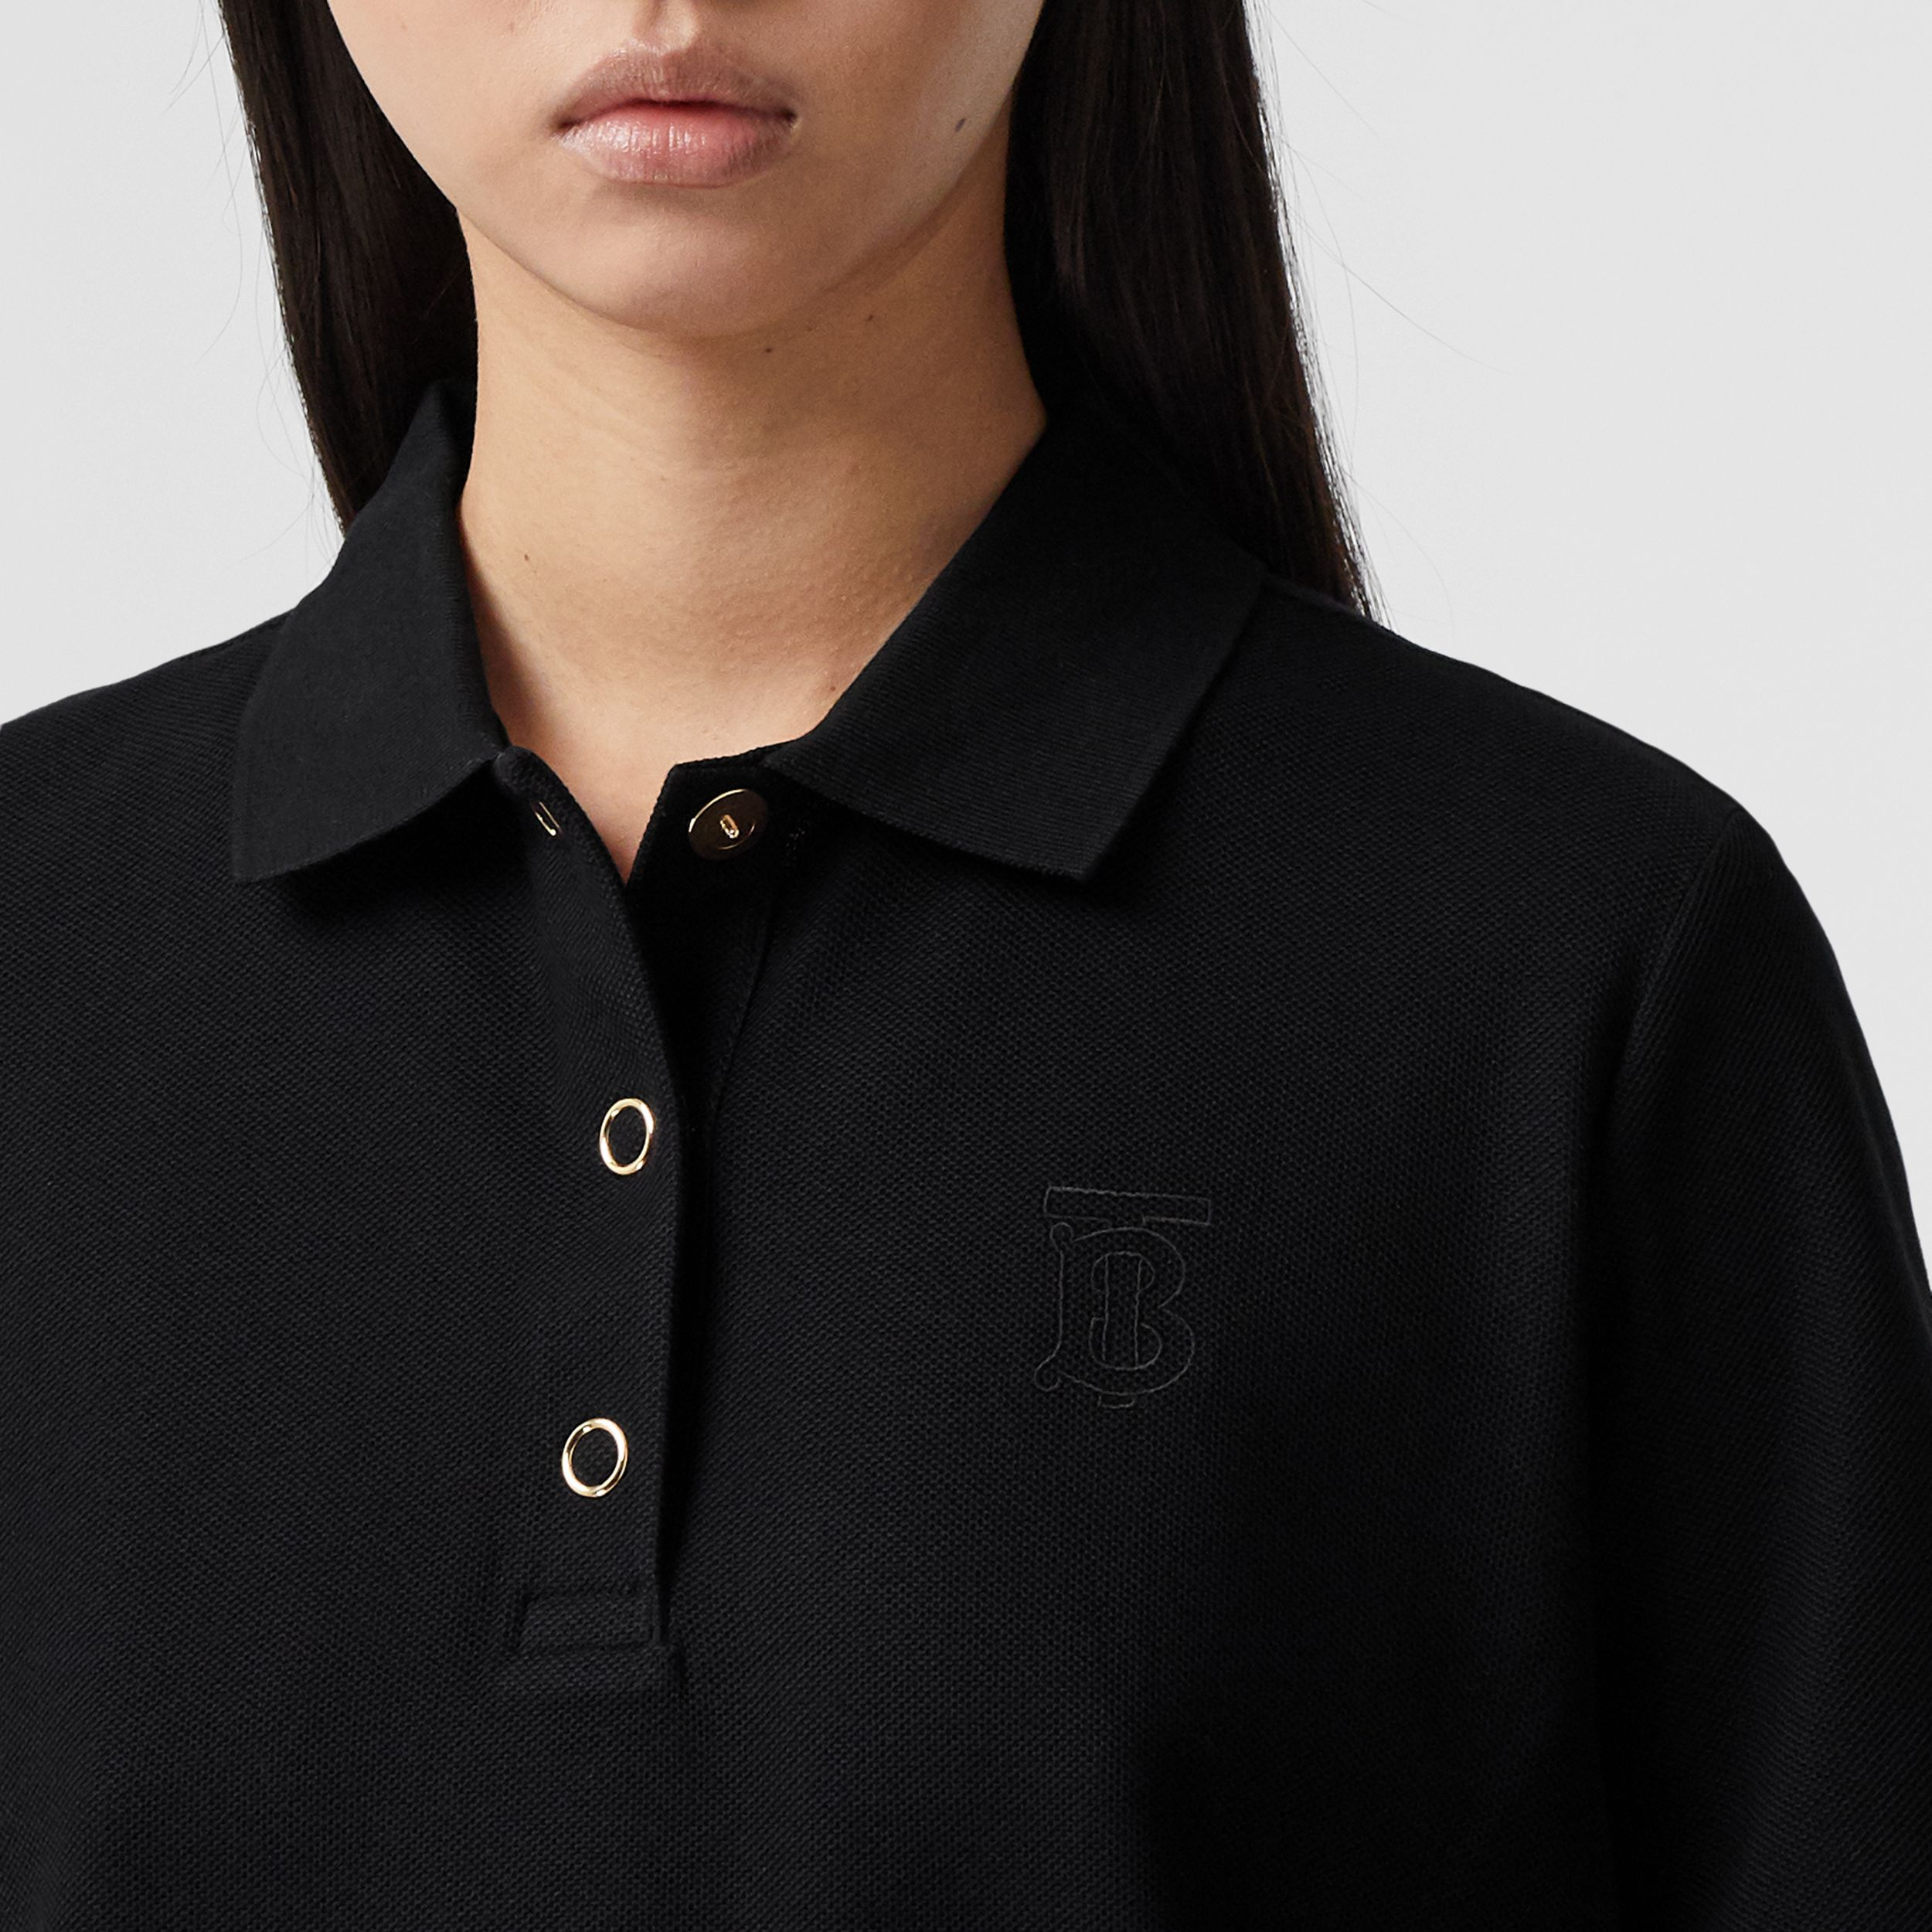 Monogram Motif Cotton Piqué Polo Shirt in Black - Women | Burberry - 2